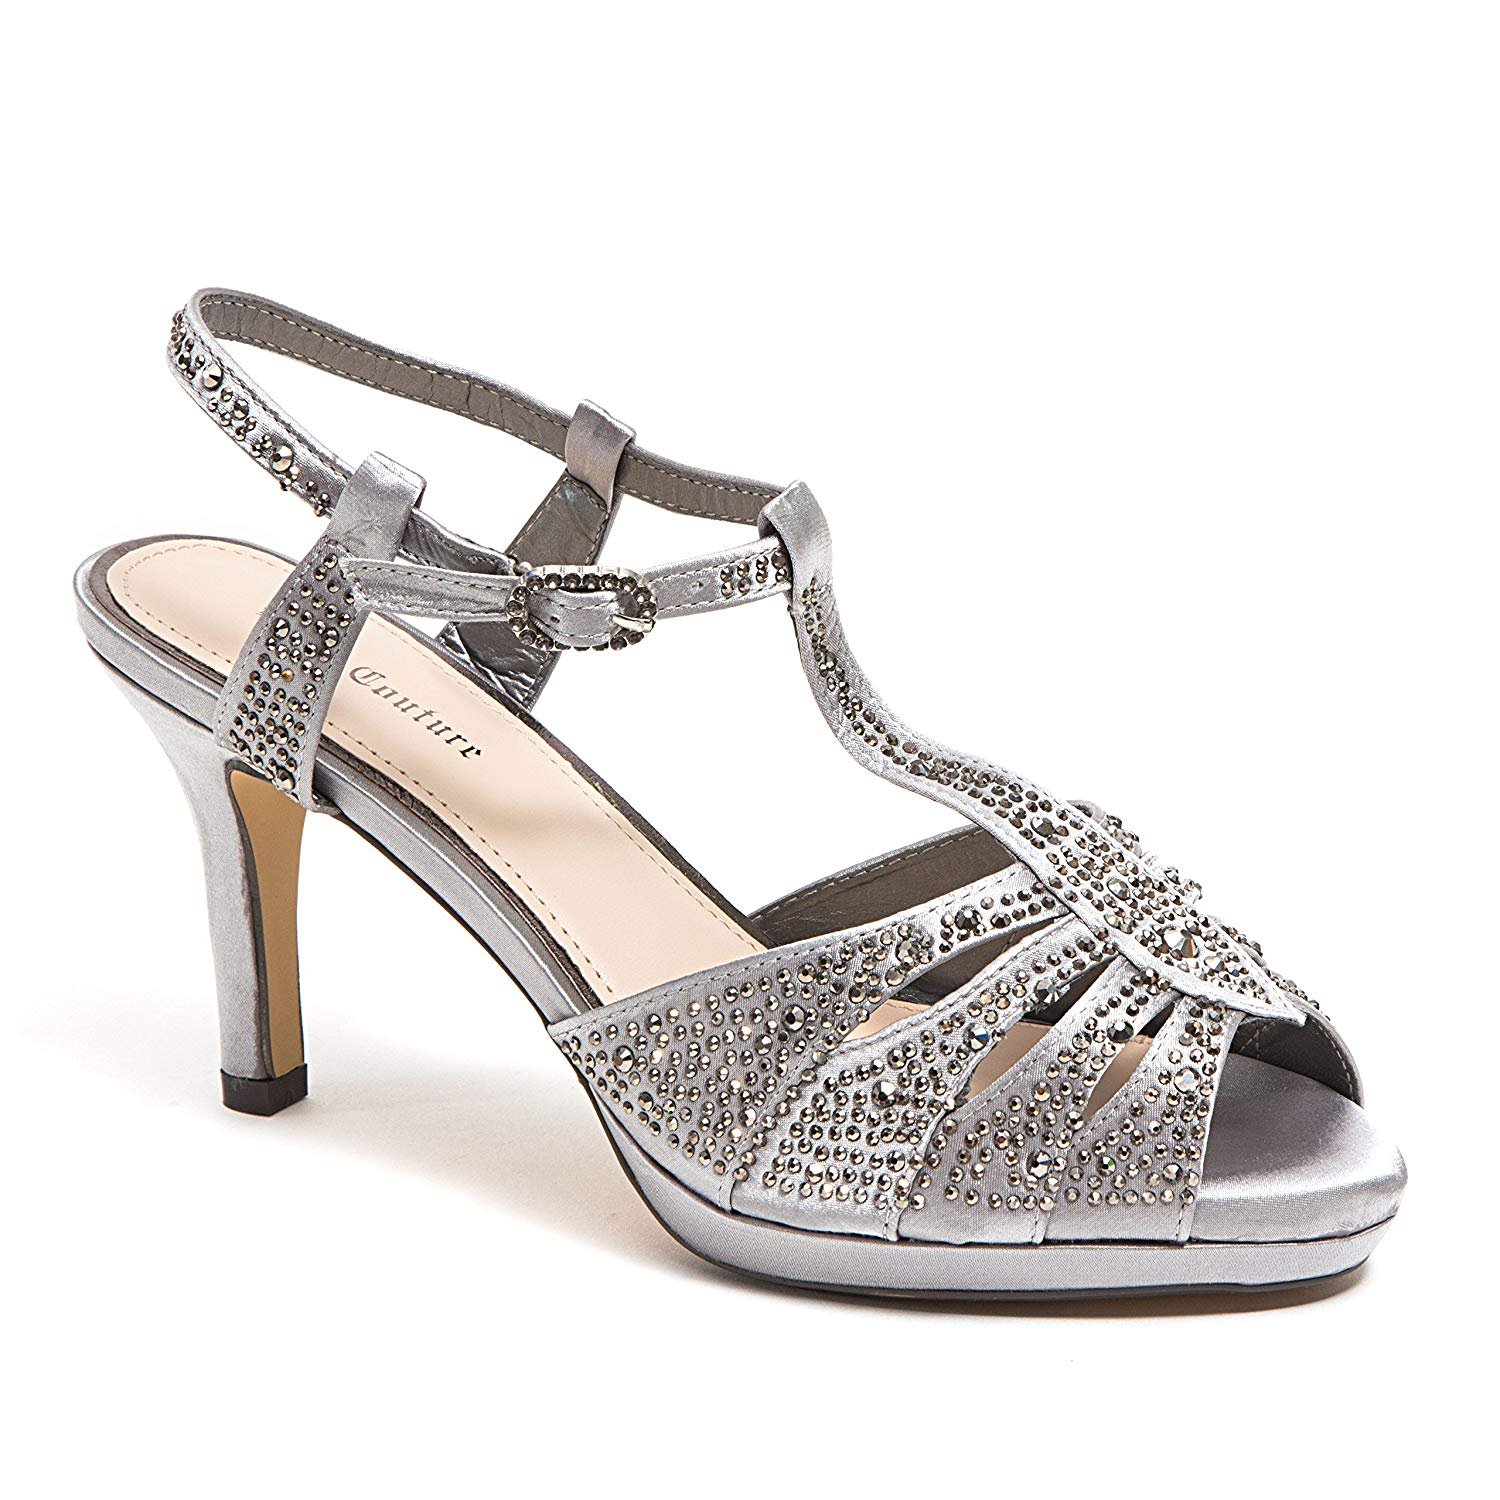 d463971440f2 Get Quotations · Lady Couture Women s Wide Width Dressy Sandals with  Rhinestone